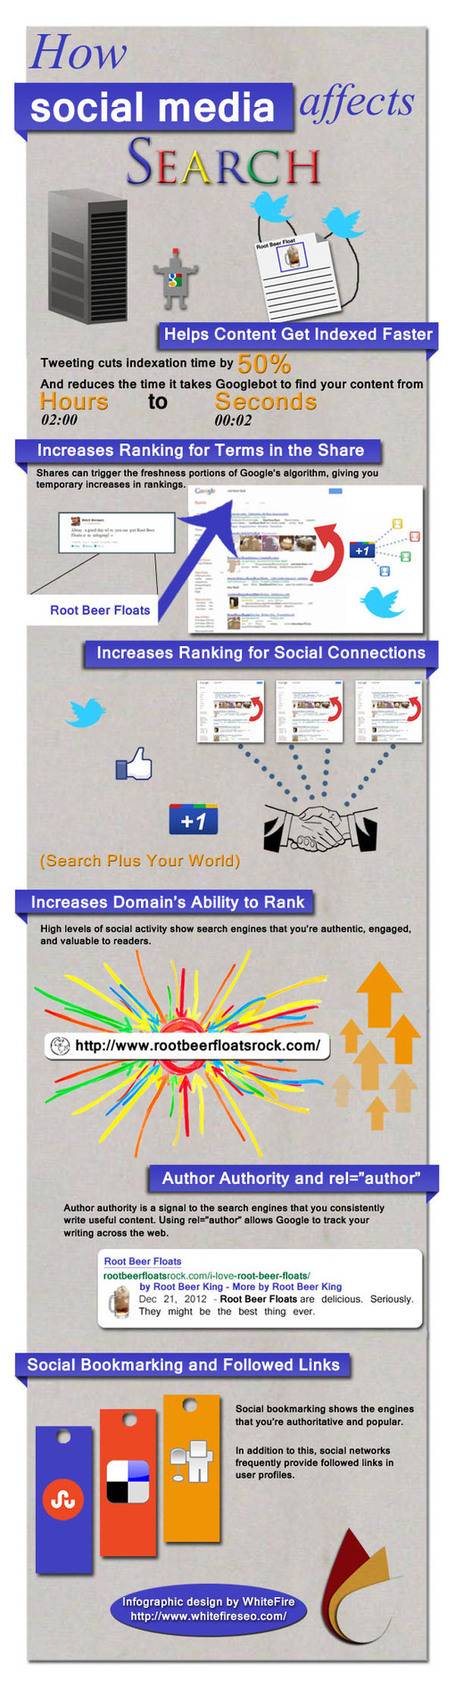 How Social Media Impacts SEO and Site Ranking: infographic | AtDotCom Social media | Scoop.it